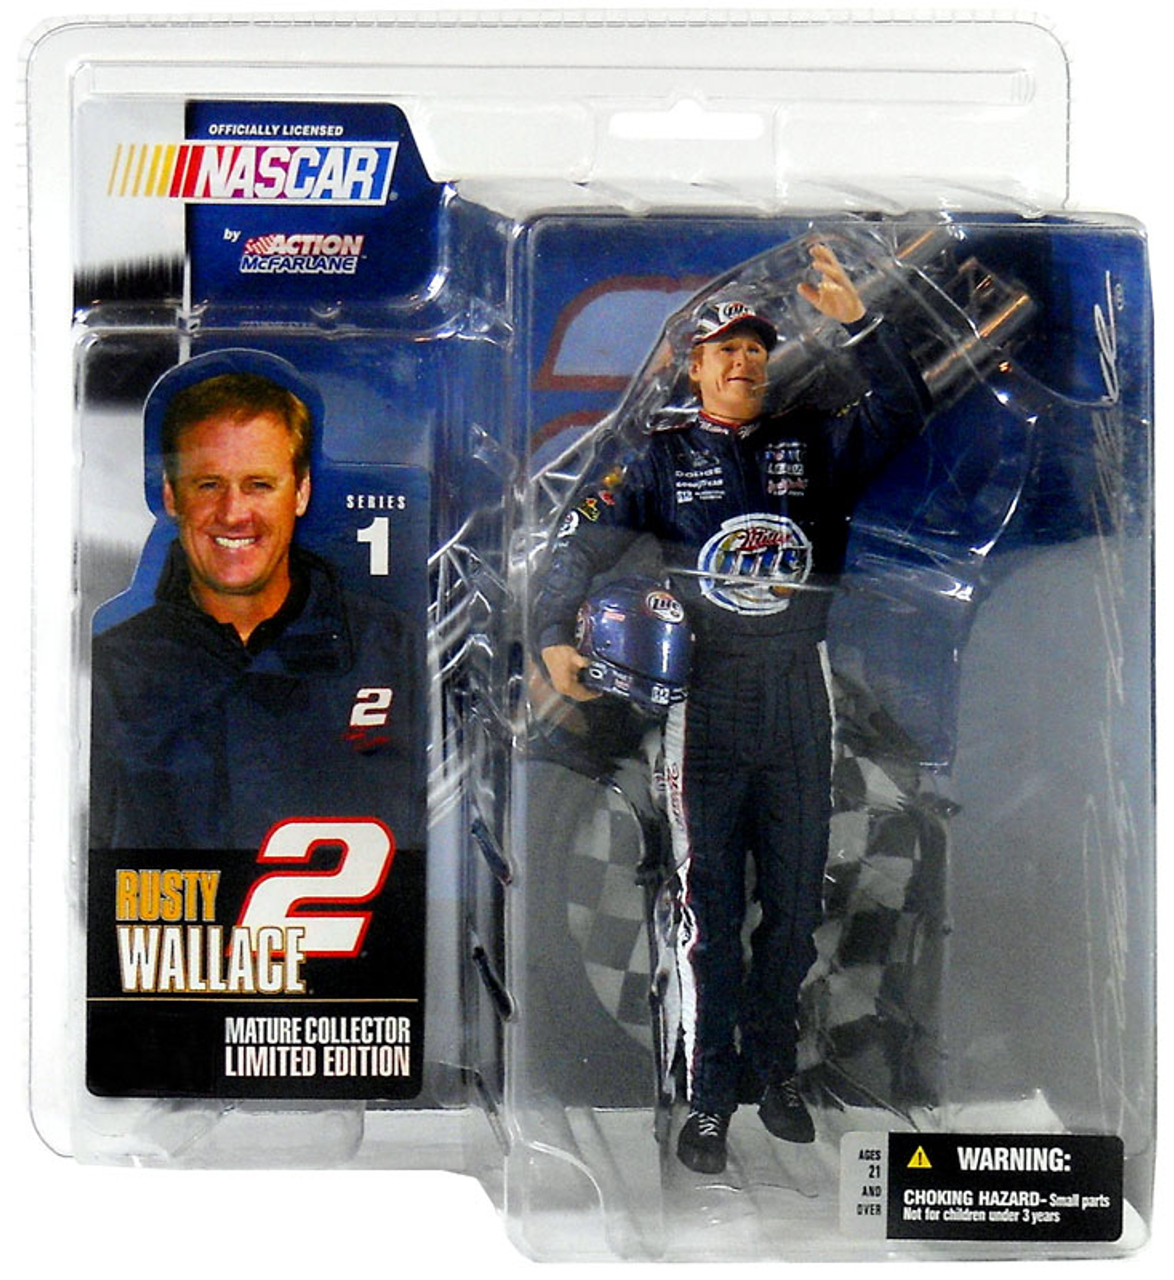 McFarlane Toys NASCAR Rusty Wallace Action Figure